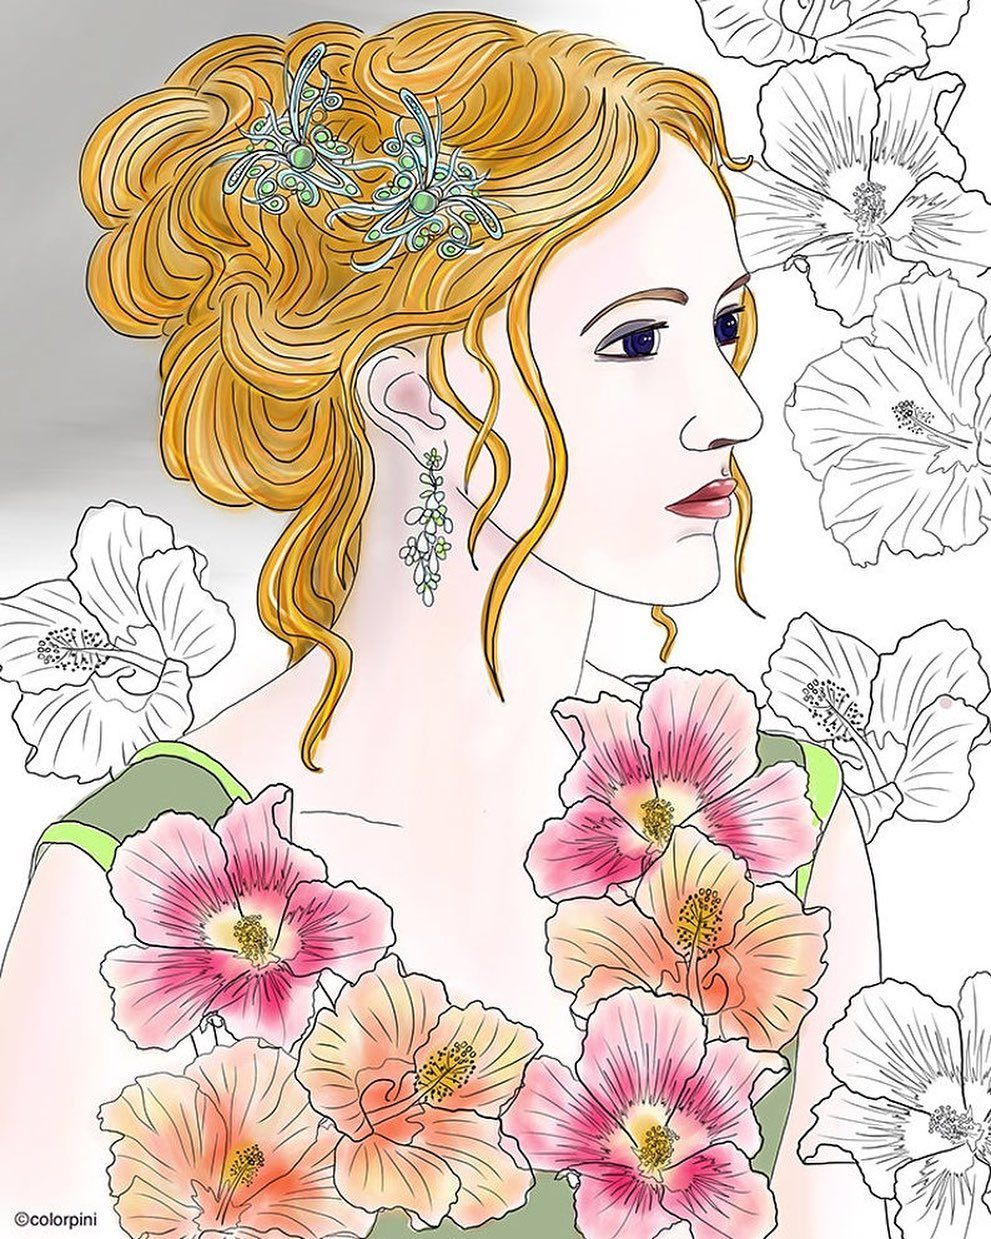 Colorpini On Instagram Coloring Beautiful Designs Flower Duchess Series Comes In 3 Coloring Pages In A Pdf File To Do In 2020 Beautiful Design Coloring Pages Color